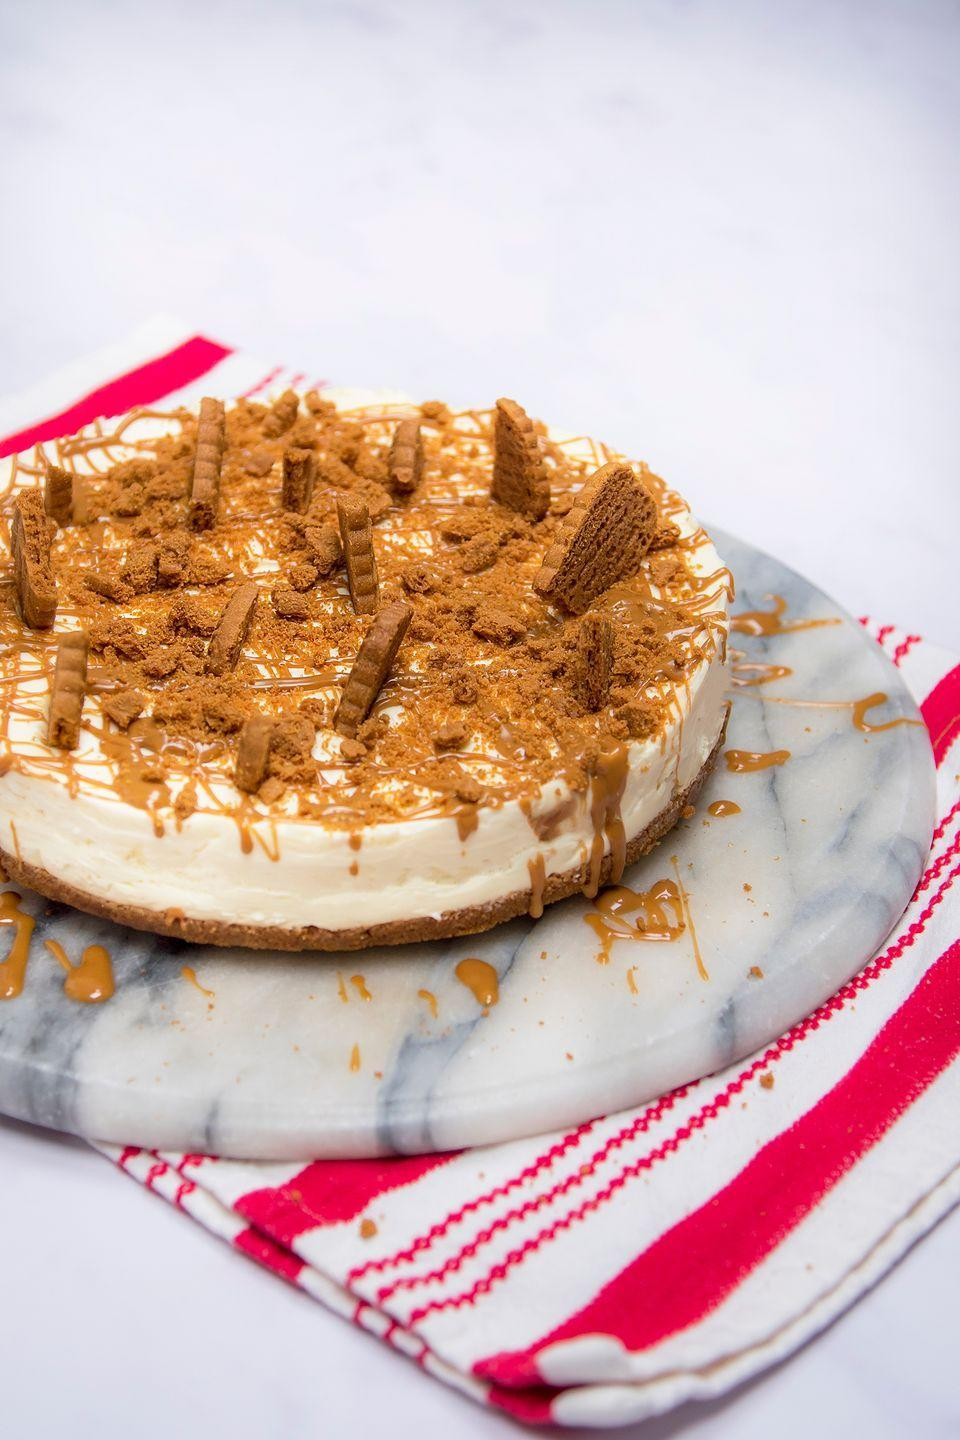 """<p>Rich and full of caramel flavour, this cheesecake is perfect for the Biscoff lover in your life</p><p><strong>Recipe: <a href=""""https://www.goodhousekeeping.com/uk/food/recipes/a26058618/biscoff-cheesecake/"""" rel=""""nofollow noopener"""" target=""""_blank"""" data-ylk=""""slk:Biscoff cheesecake"""" class=""""link rapid-noclick-resp"""">Biscoff cheesecake</a></strong></p>"""